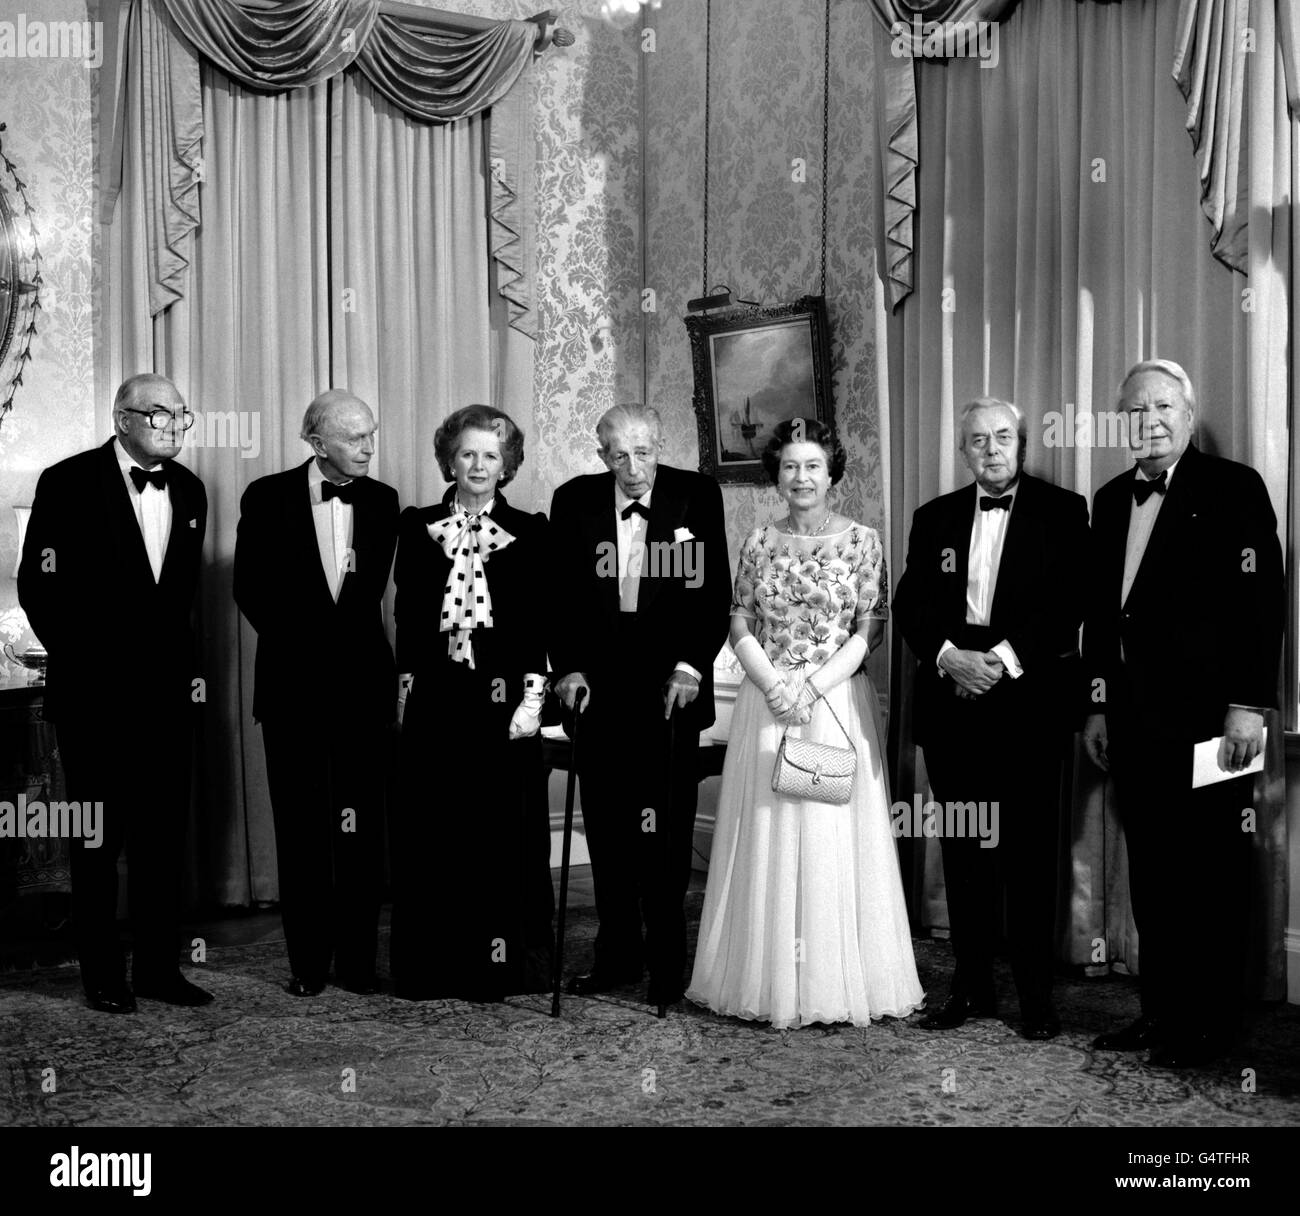 Politics - 250th Anniversary of the Prime Minister's office - Downing Street, London - Stock Image